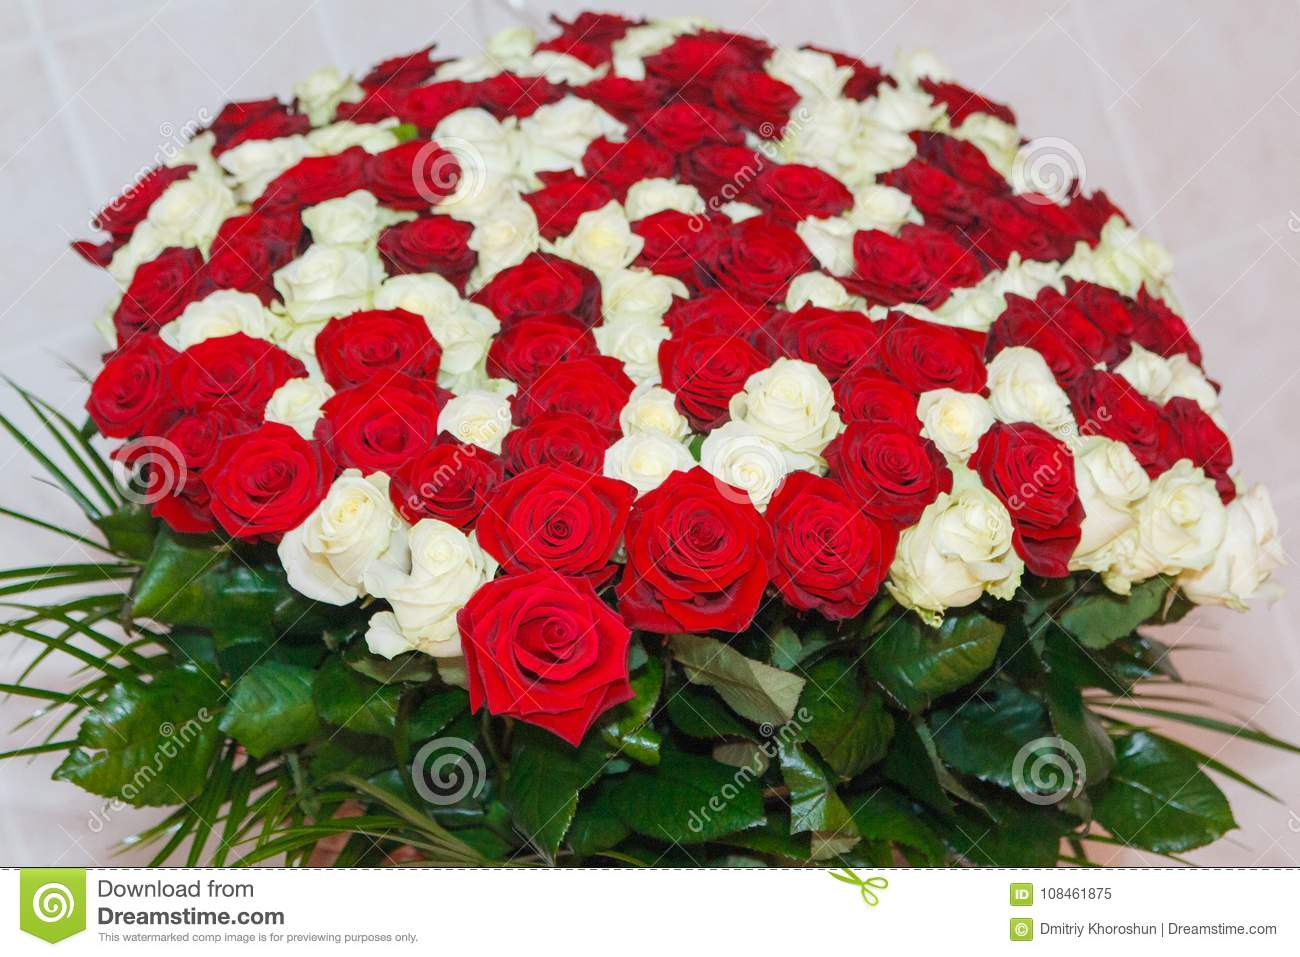 Amazing Bouquet Of Fresh Red And White Roses For Valentine`s Day ...